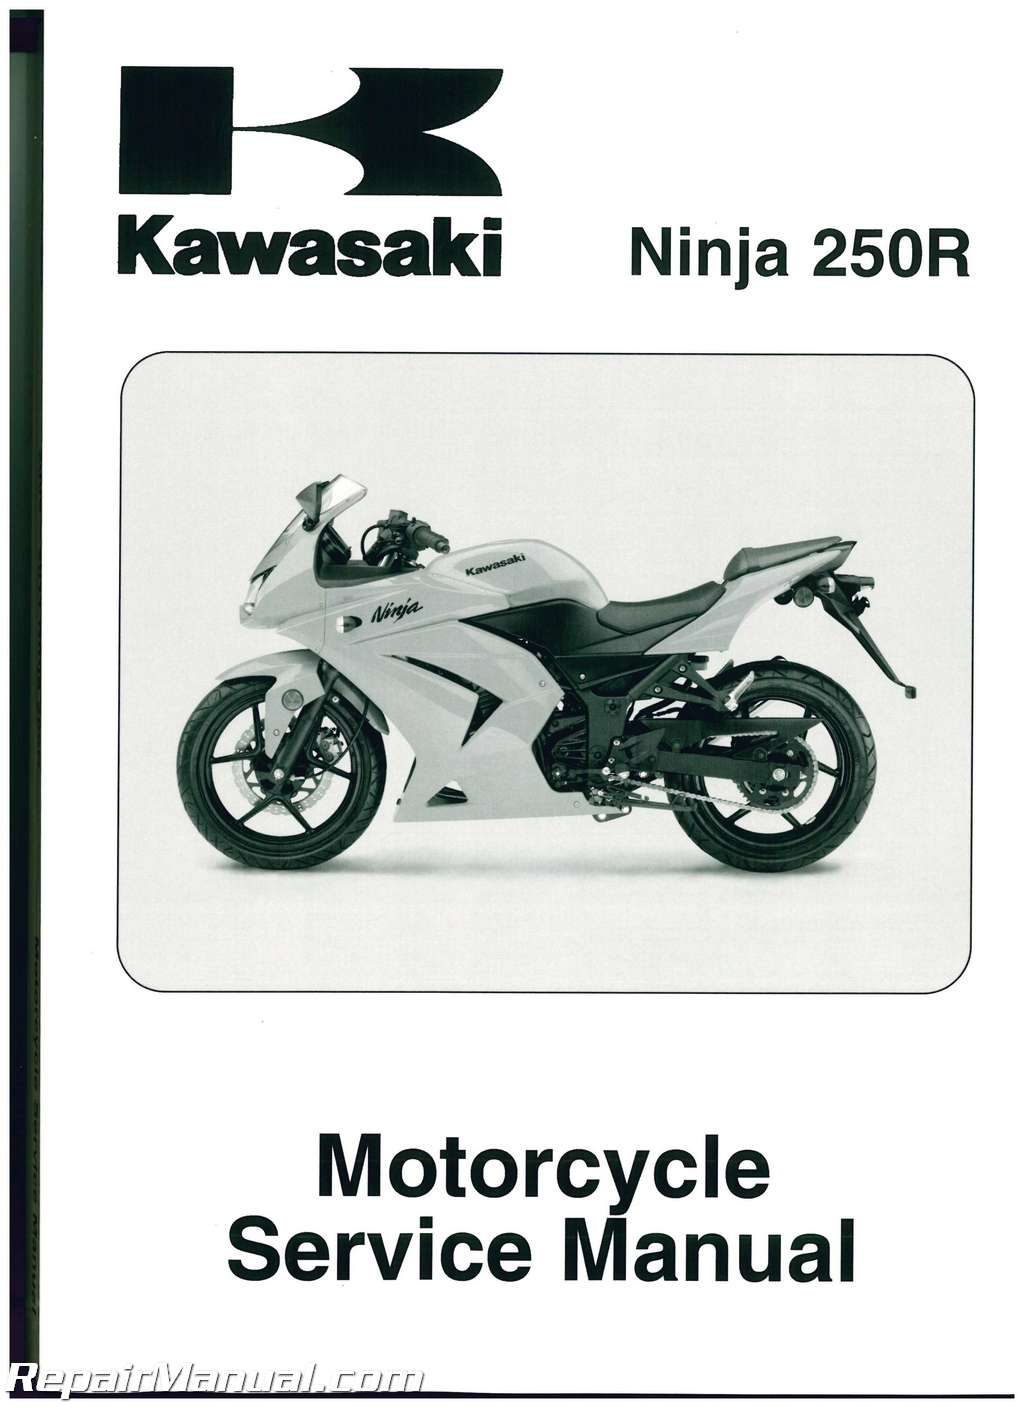 2010 kawasaki ninja 250r manual best setting instruction guide u2022 rh merchanthelps us Kawasaki Ninja 500R Kawasaki Ninja 500R